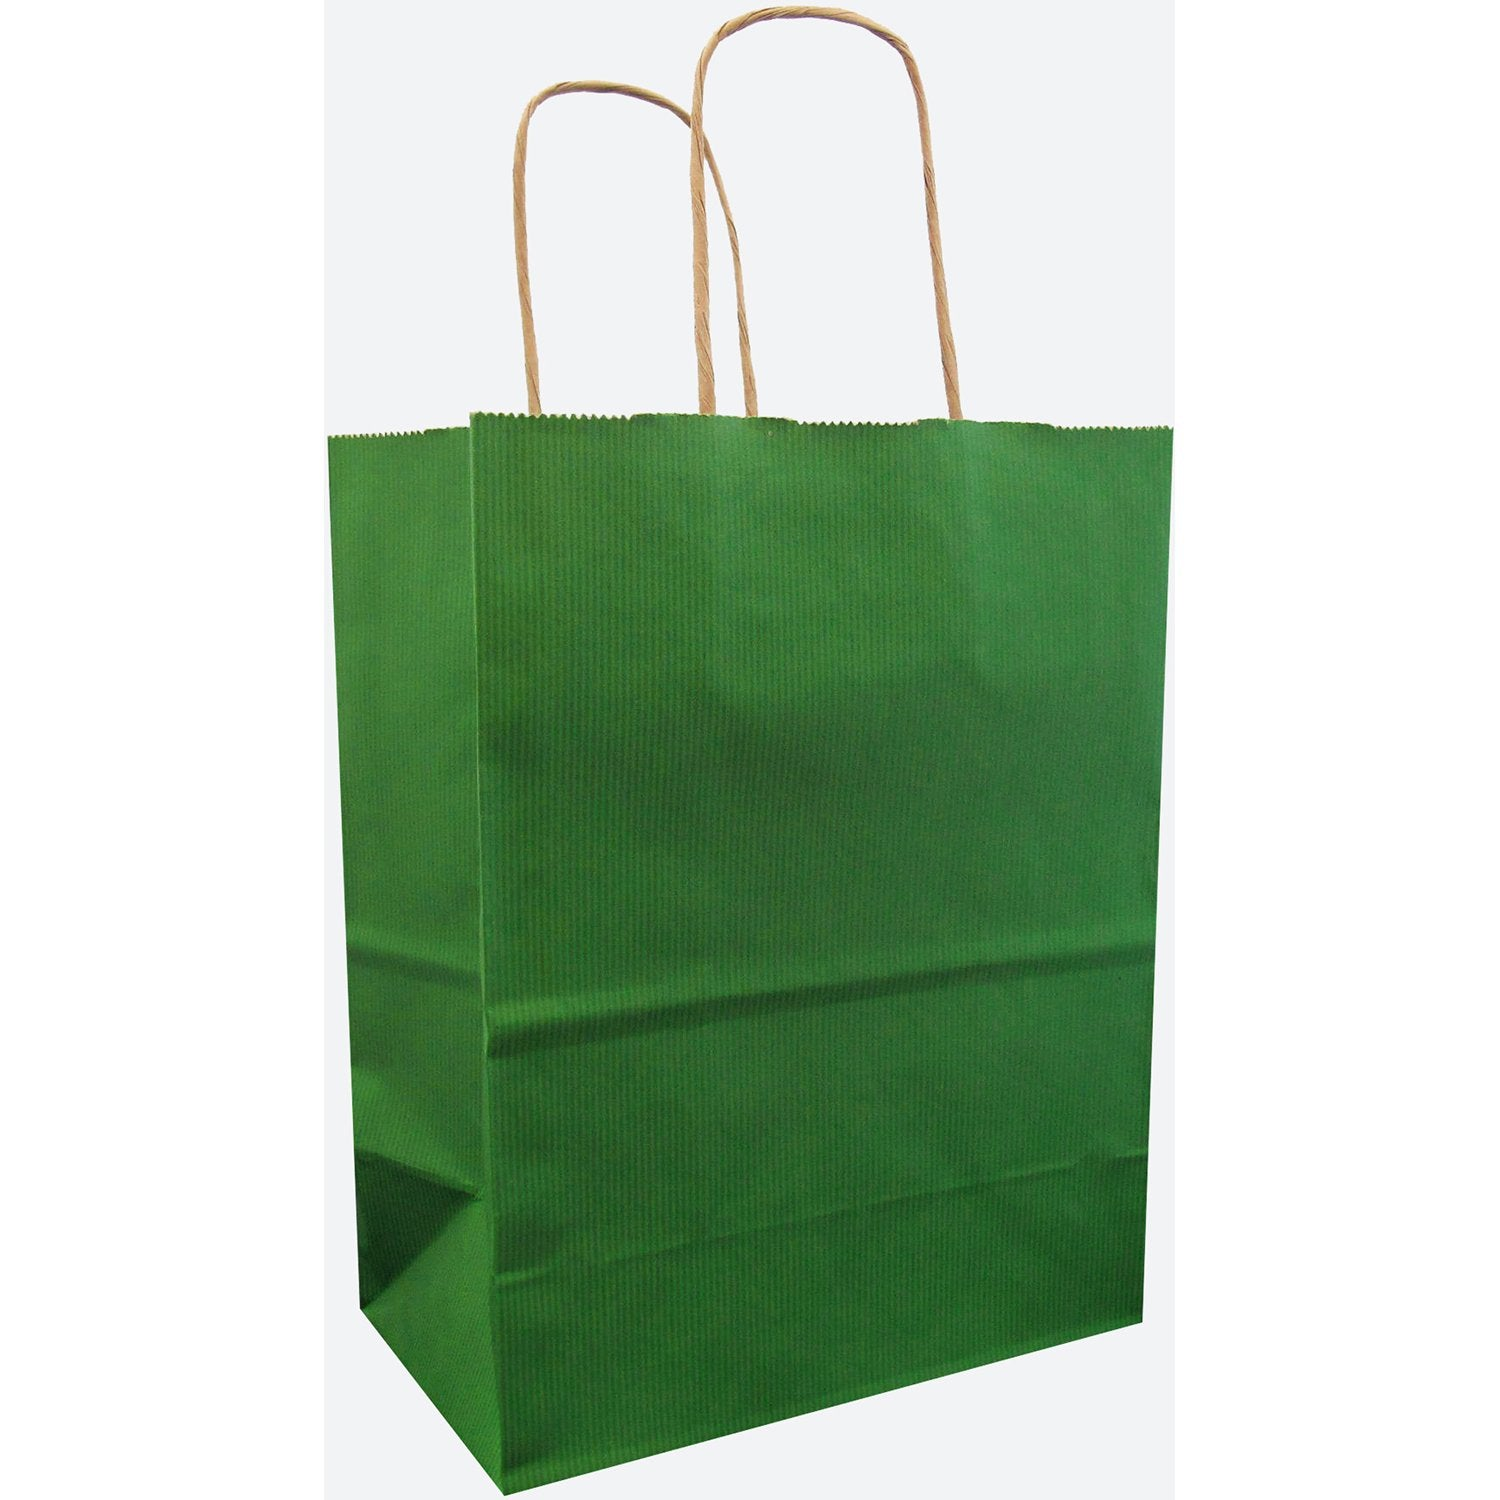 Jillson & Roberts Medium Kraft Bags, Green